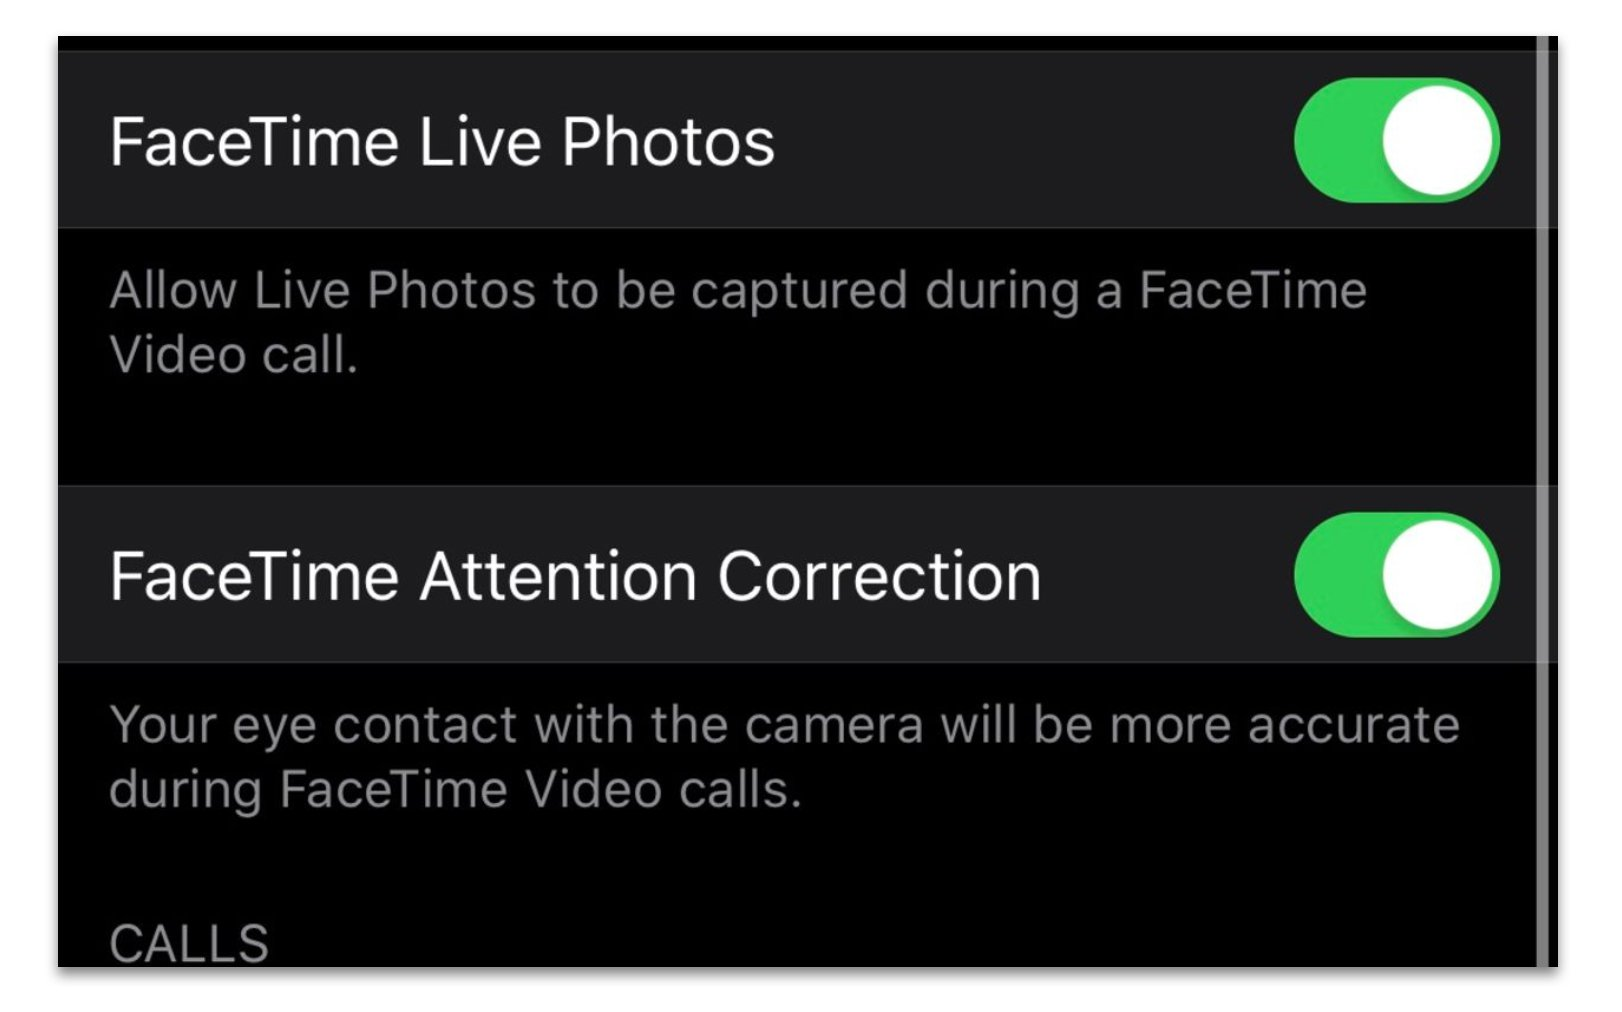 Loading FaceTime_Attention_Correction_tinhte.jpg ...